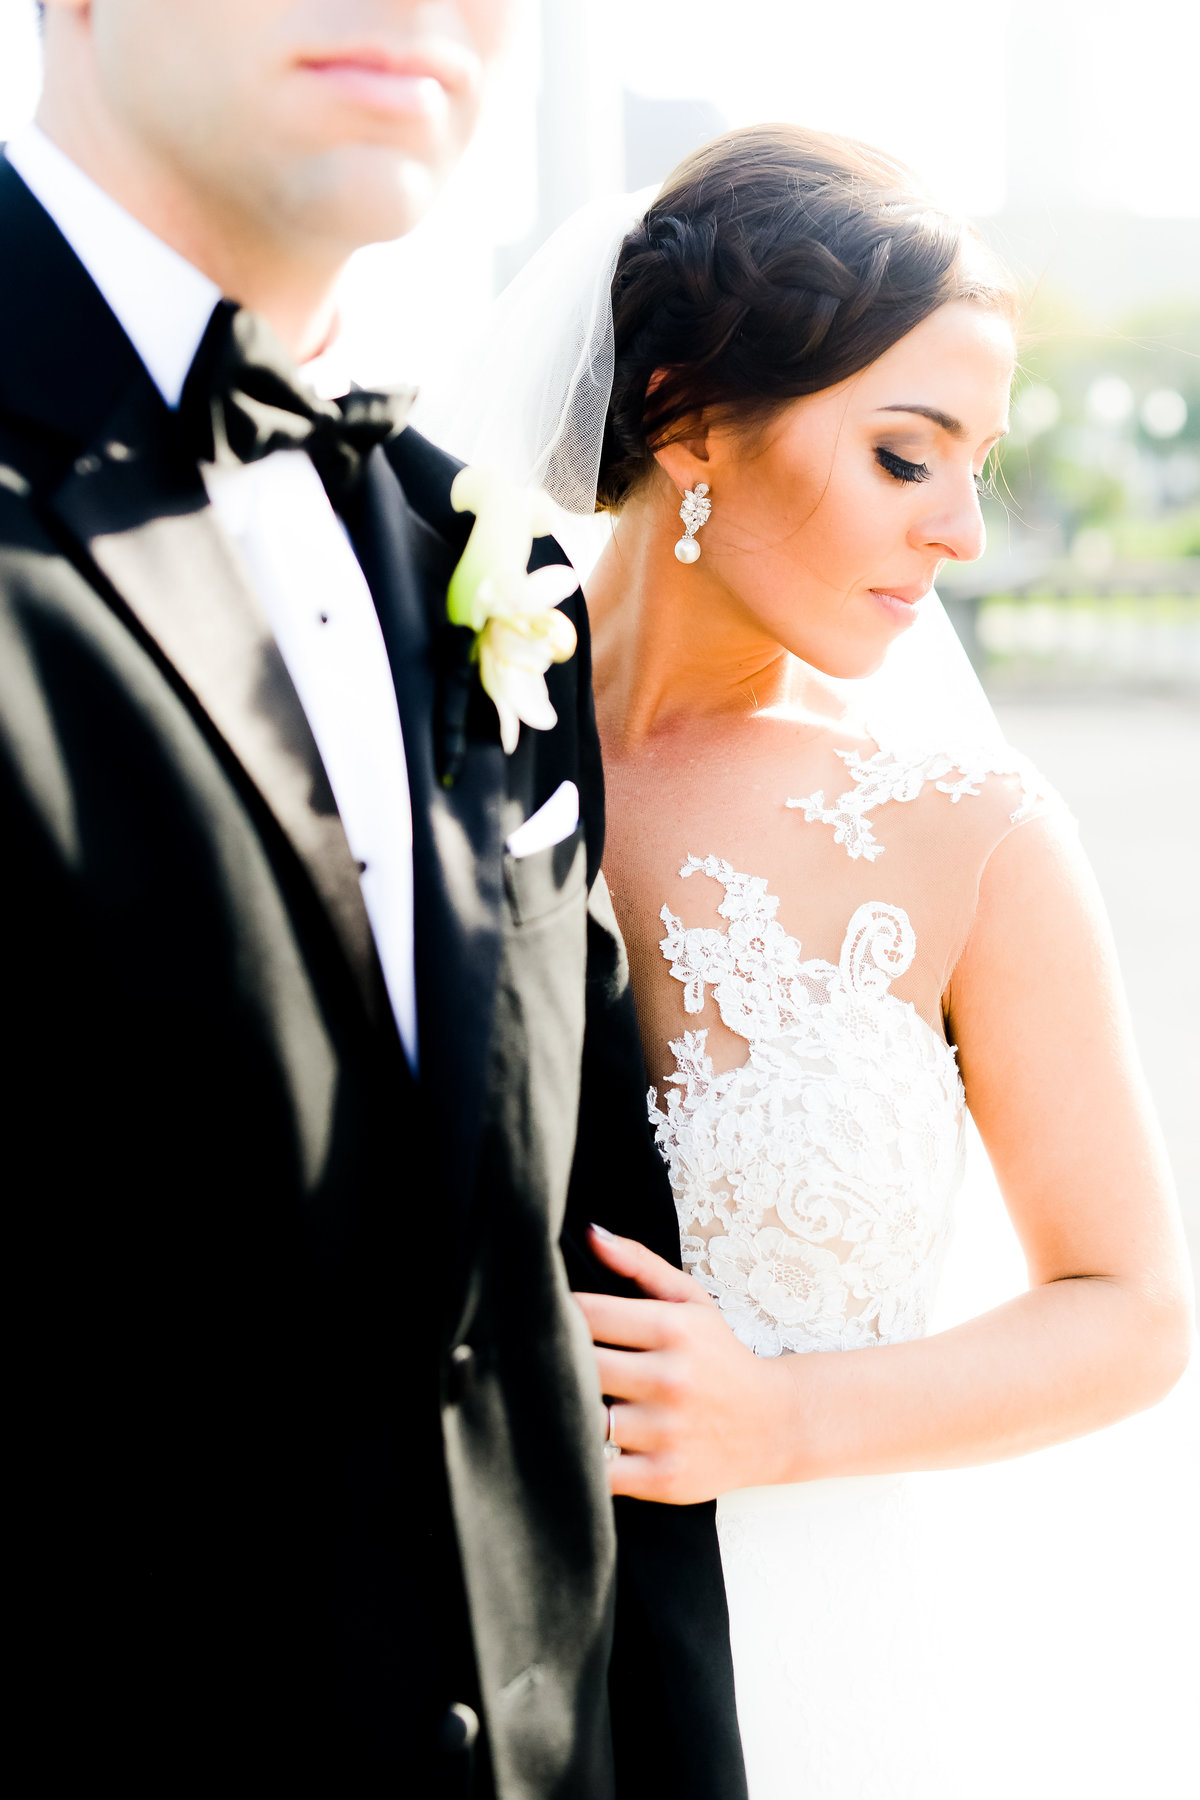 Indianapolis Wedding Photographer | Sara Ackermann Photography-7